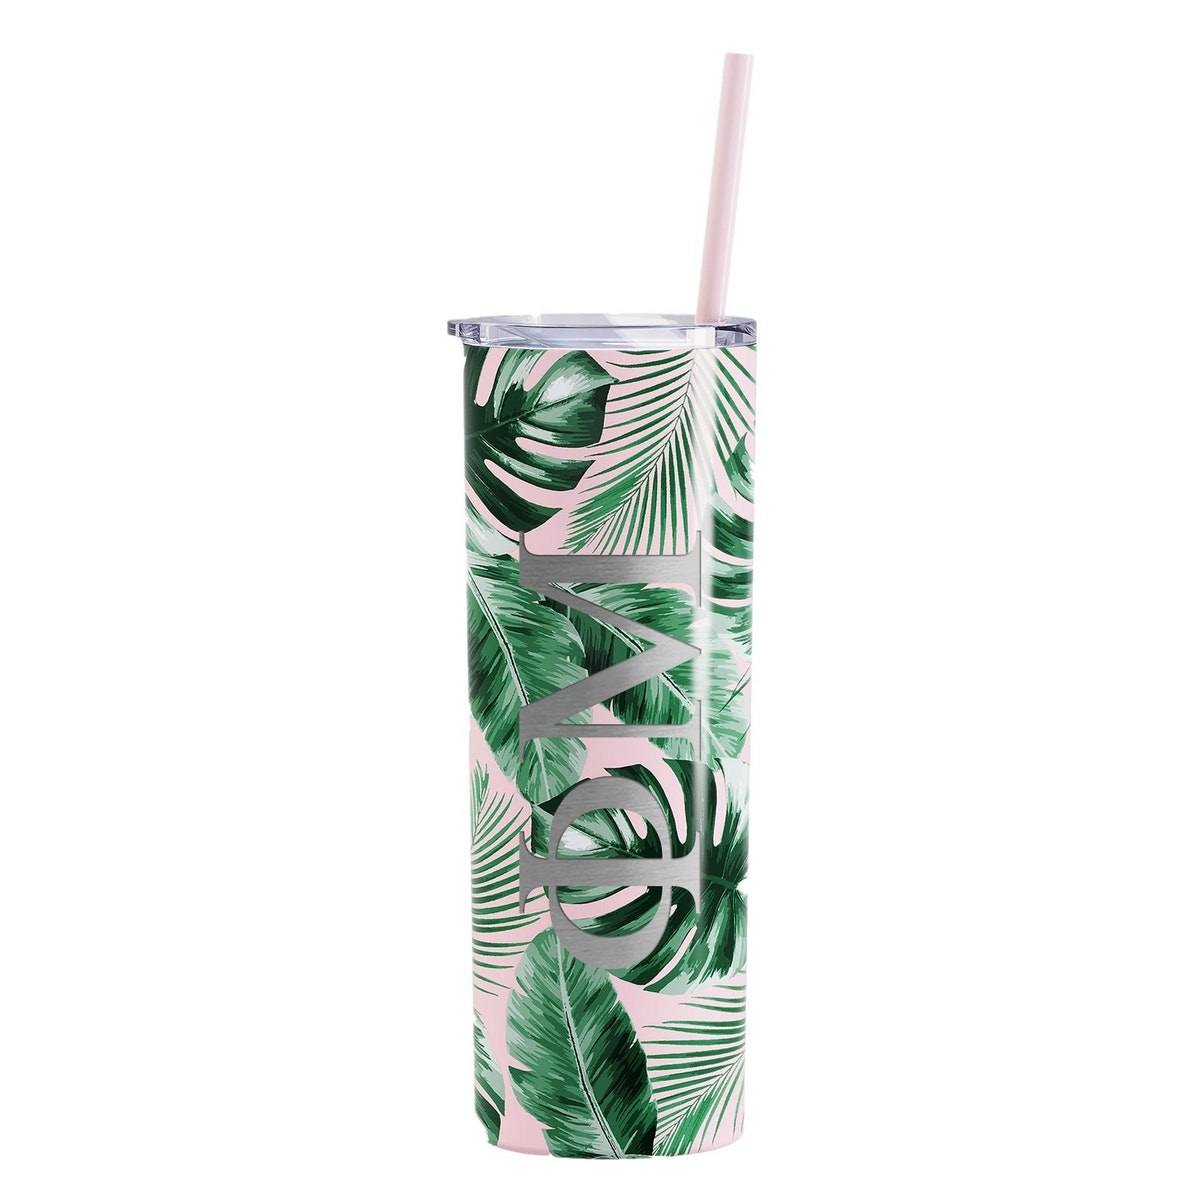 Tropical Printed Skinny Tumbler With Straw